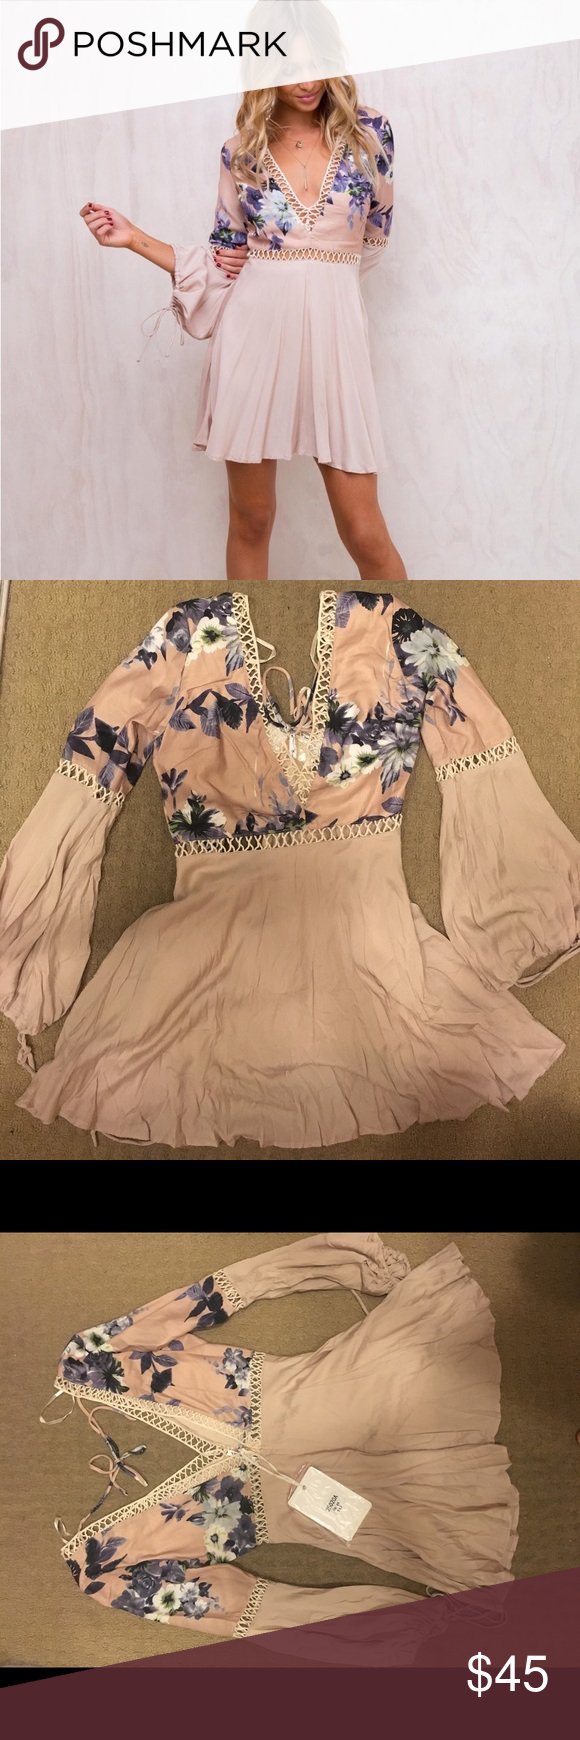 2406635700d Princess Polly Flowy Dress Never Worn. Still has tags. Beautiful pink dress  with cutouts and flowers. An Australian 10 which is a medium!